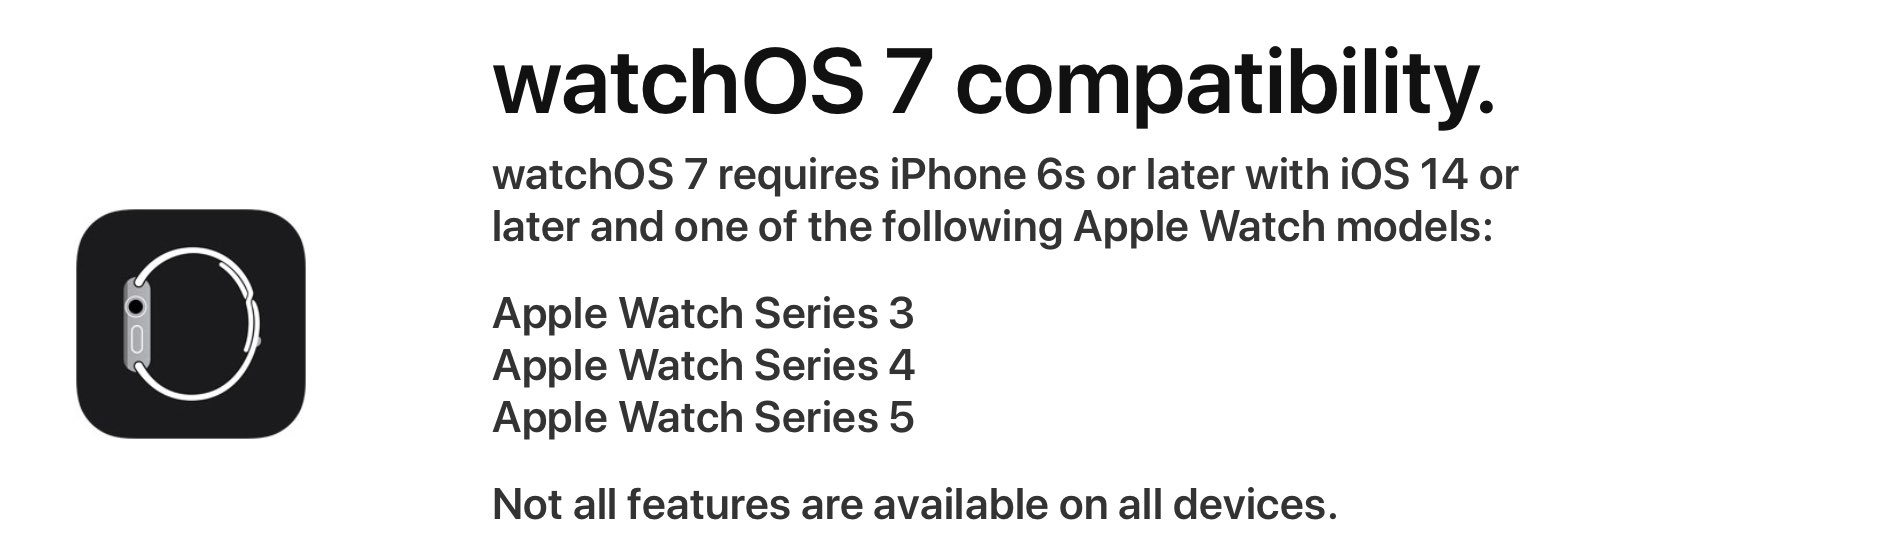 watchOS 7 system requirements Apple Watch device compatibility list